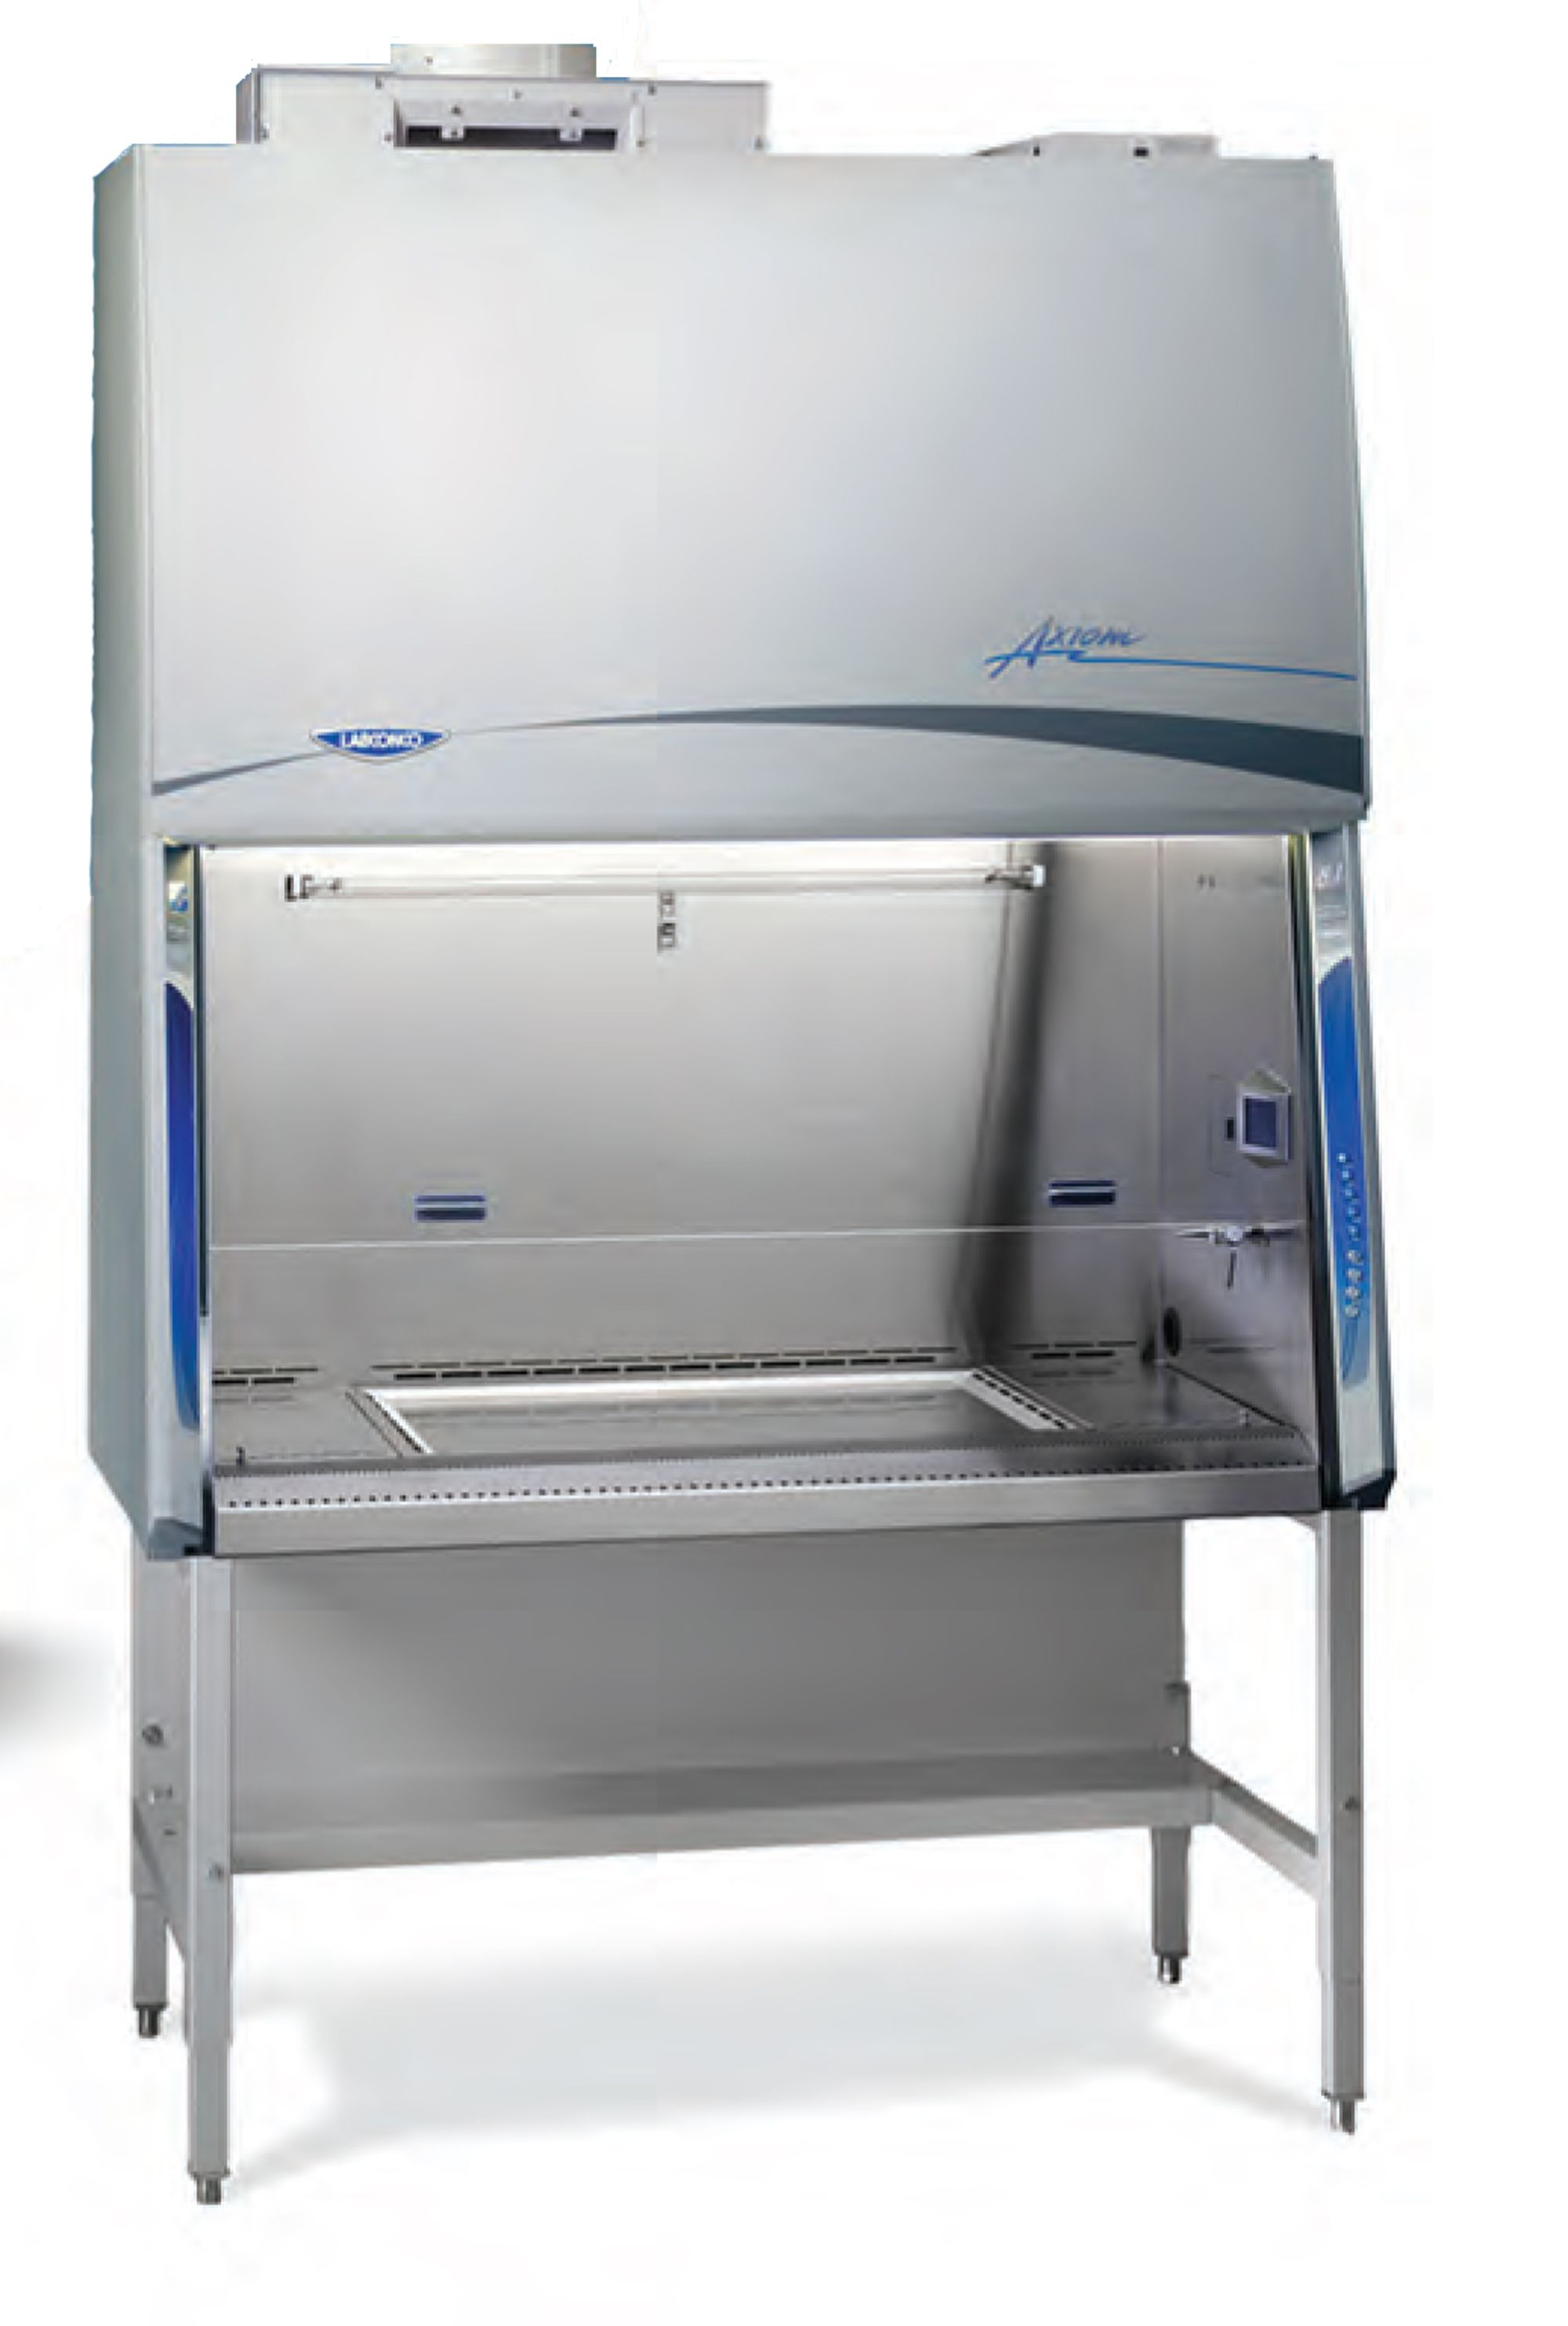 Labconco Purifier Axiom Class II, Type C1 Biosafety Cabinet